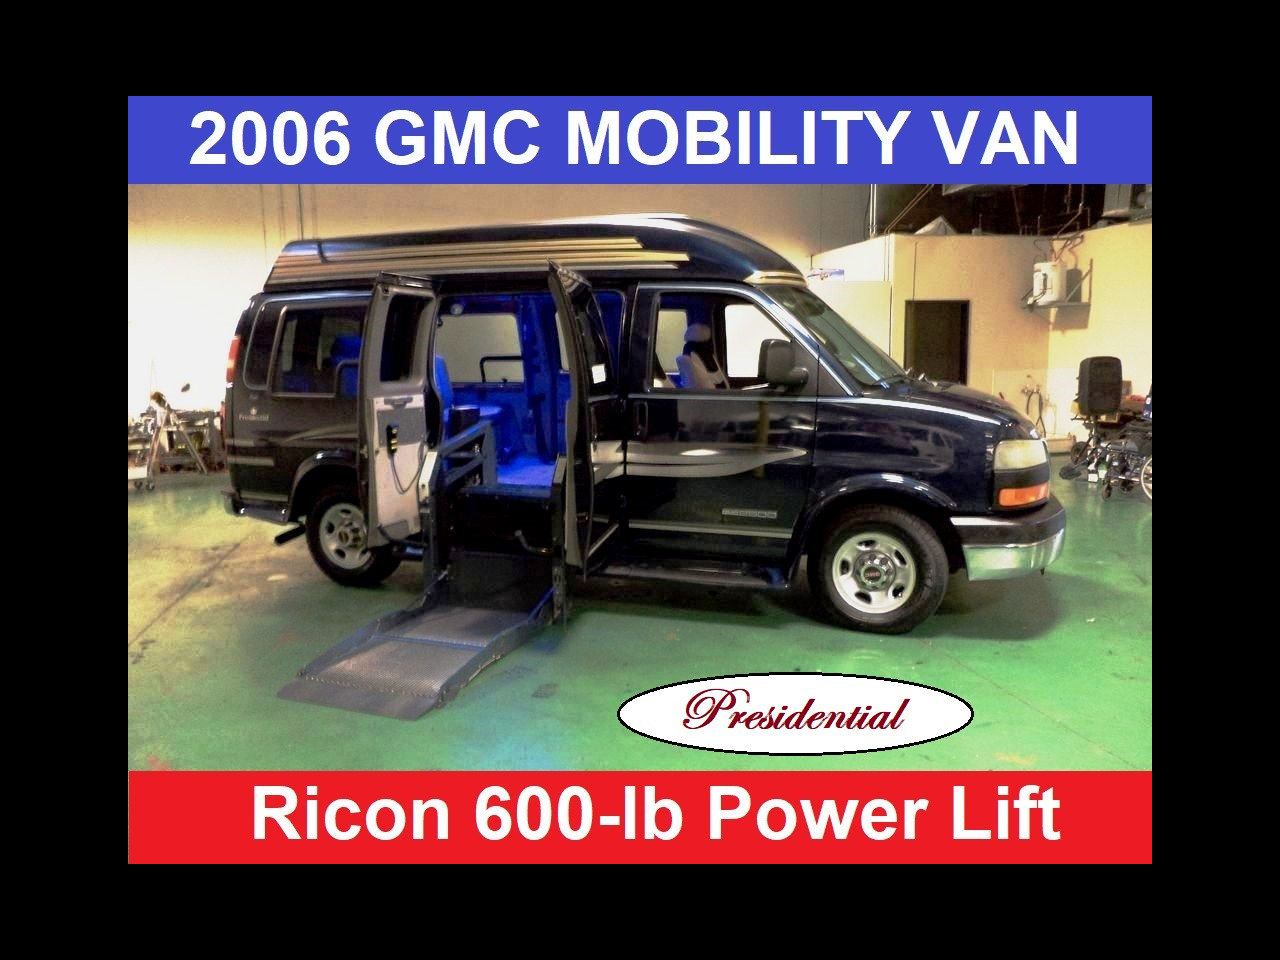 2006 GMC Savana Presidential Wheelchair Handicap Conversion Van